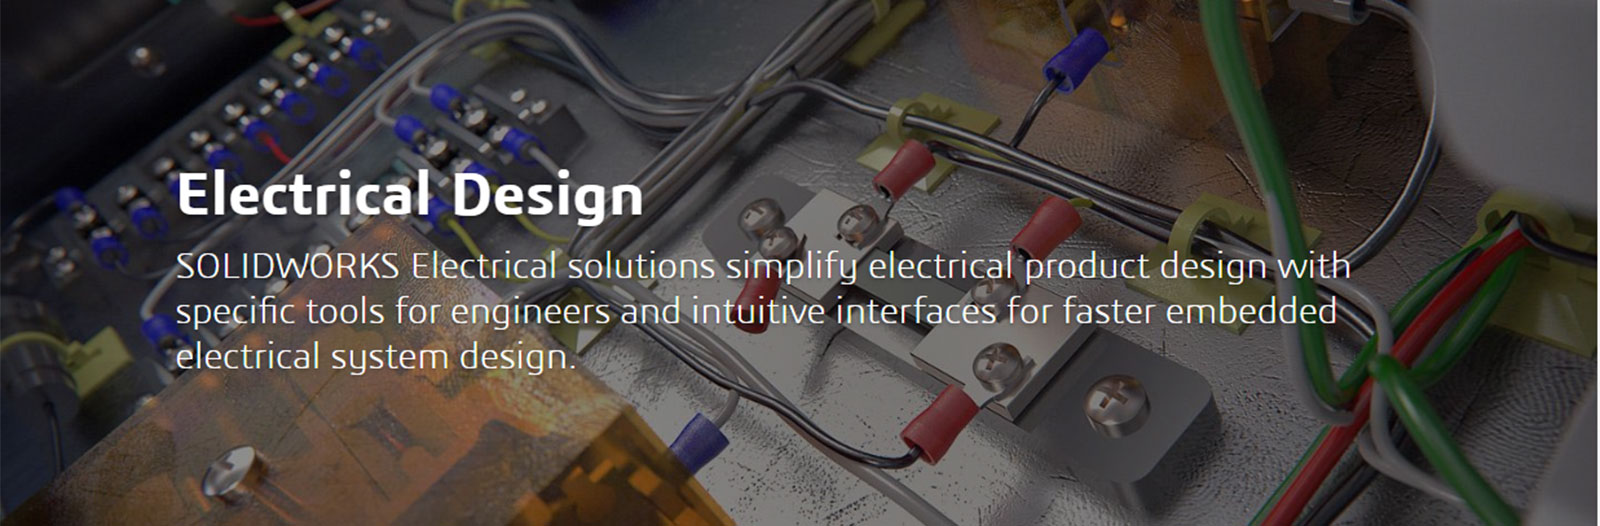 banner-Electrical